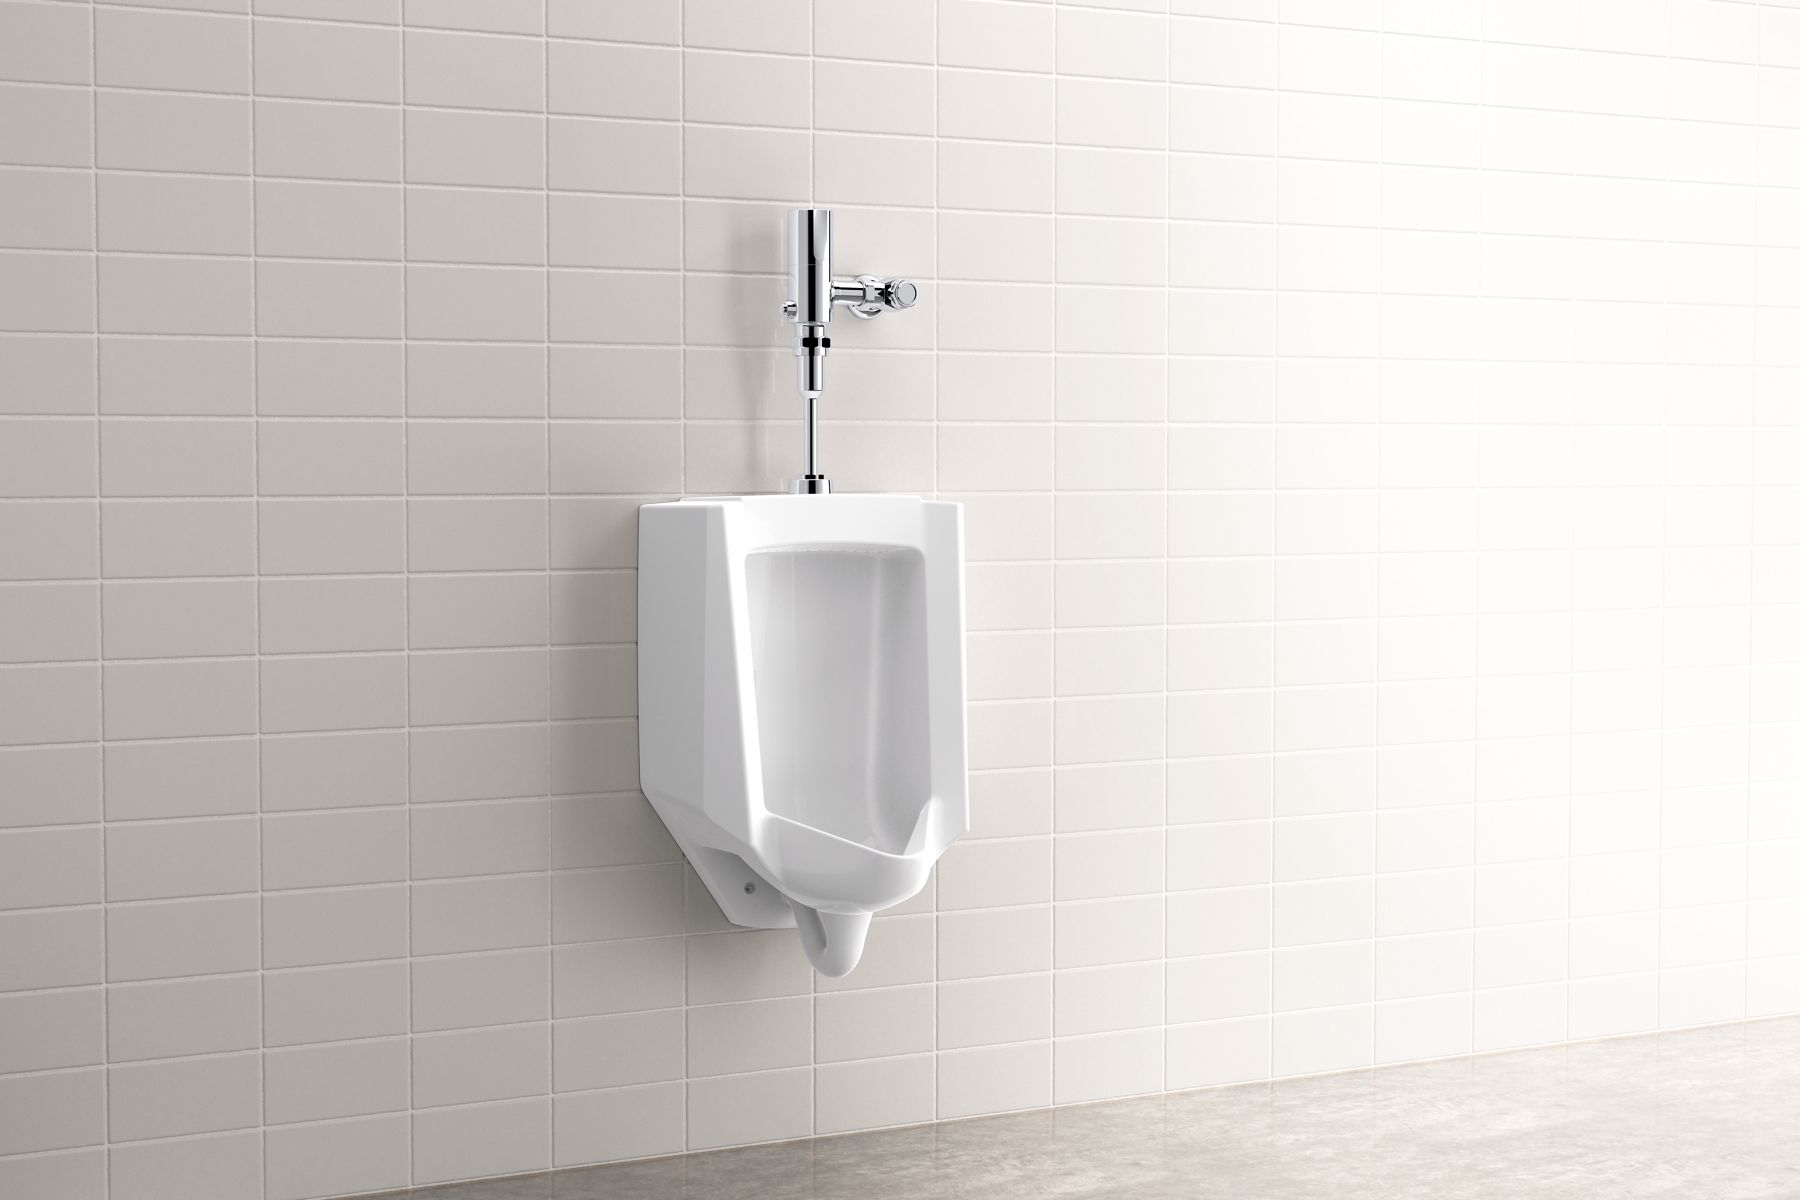 Commercial Urinals. Engineered To Endure And Offer Optimized Performance.